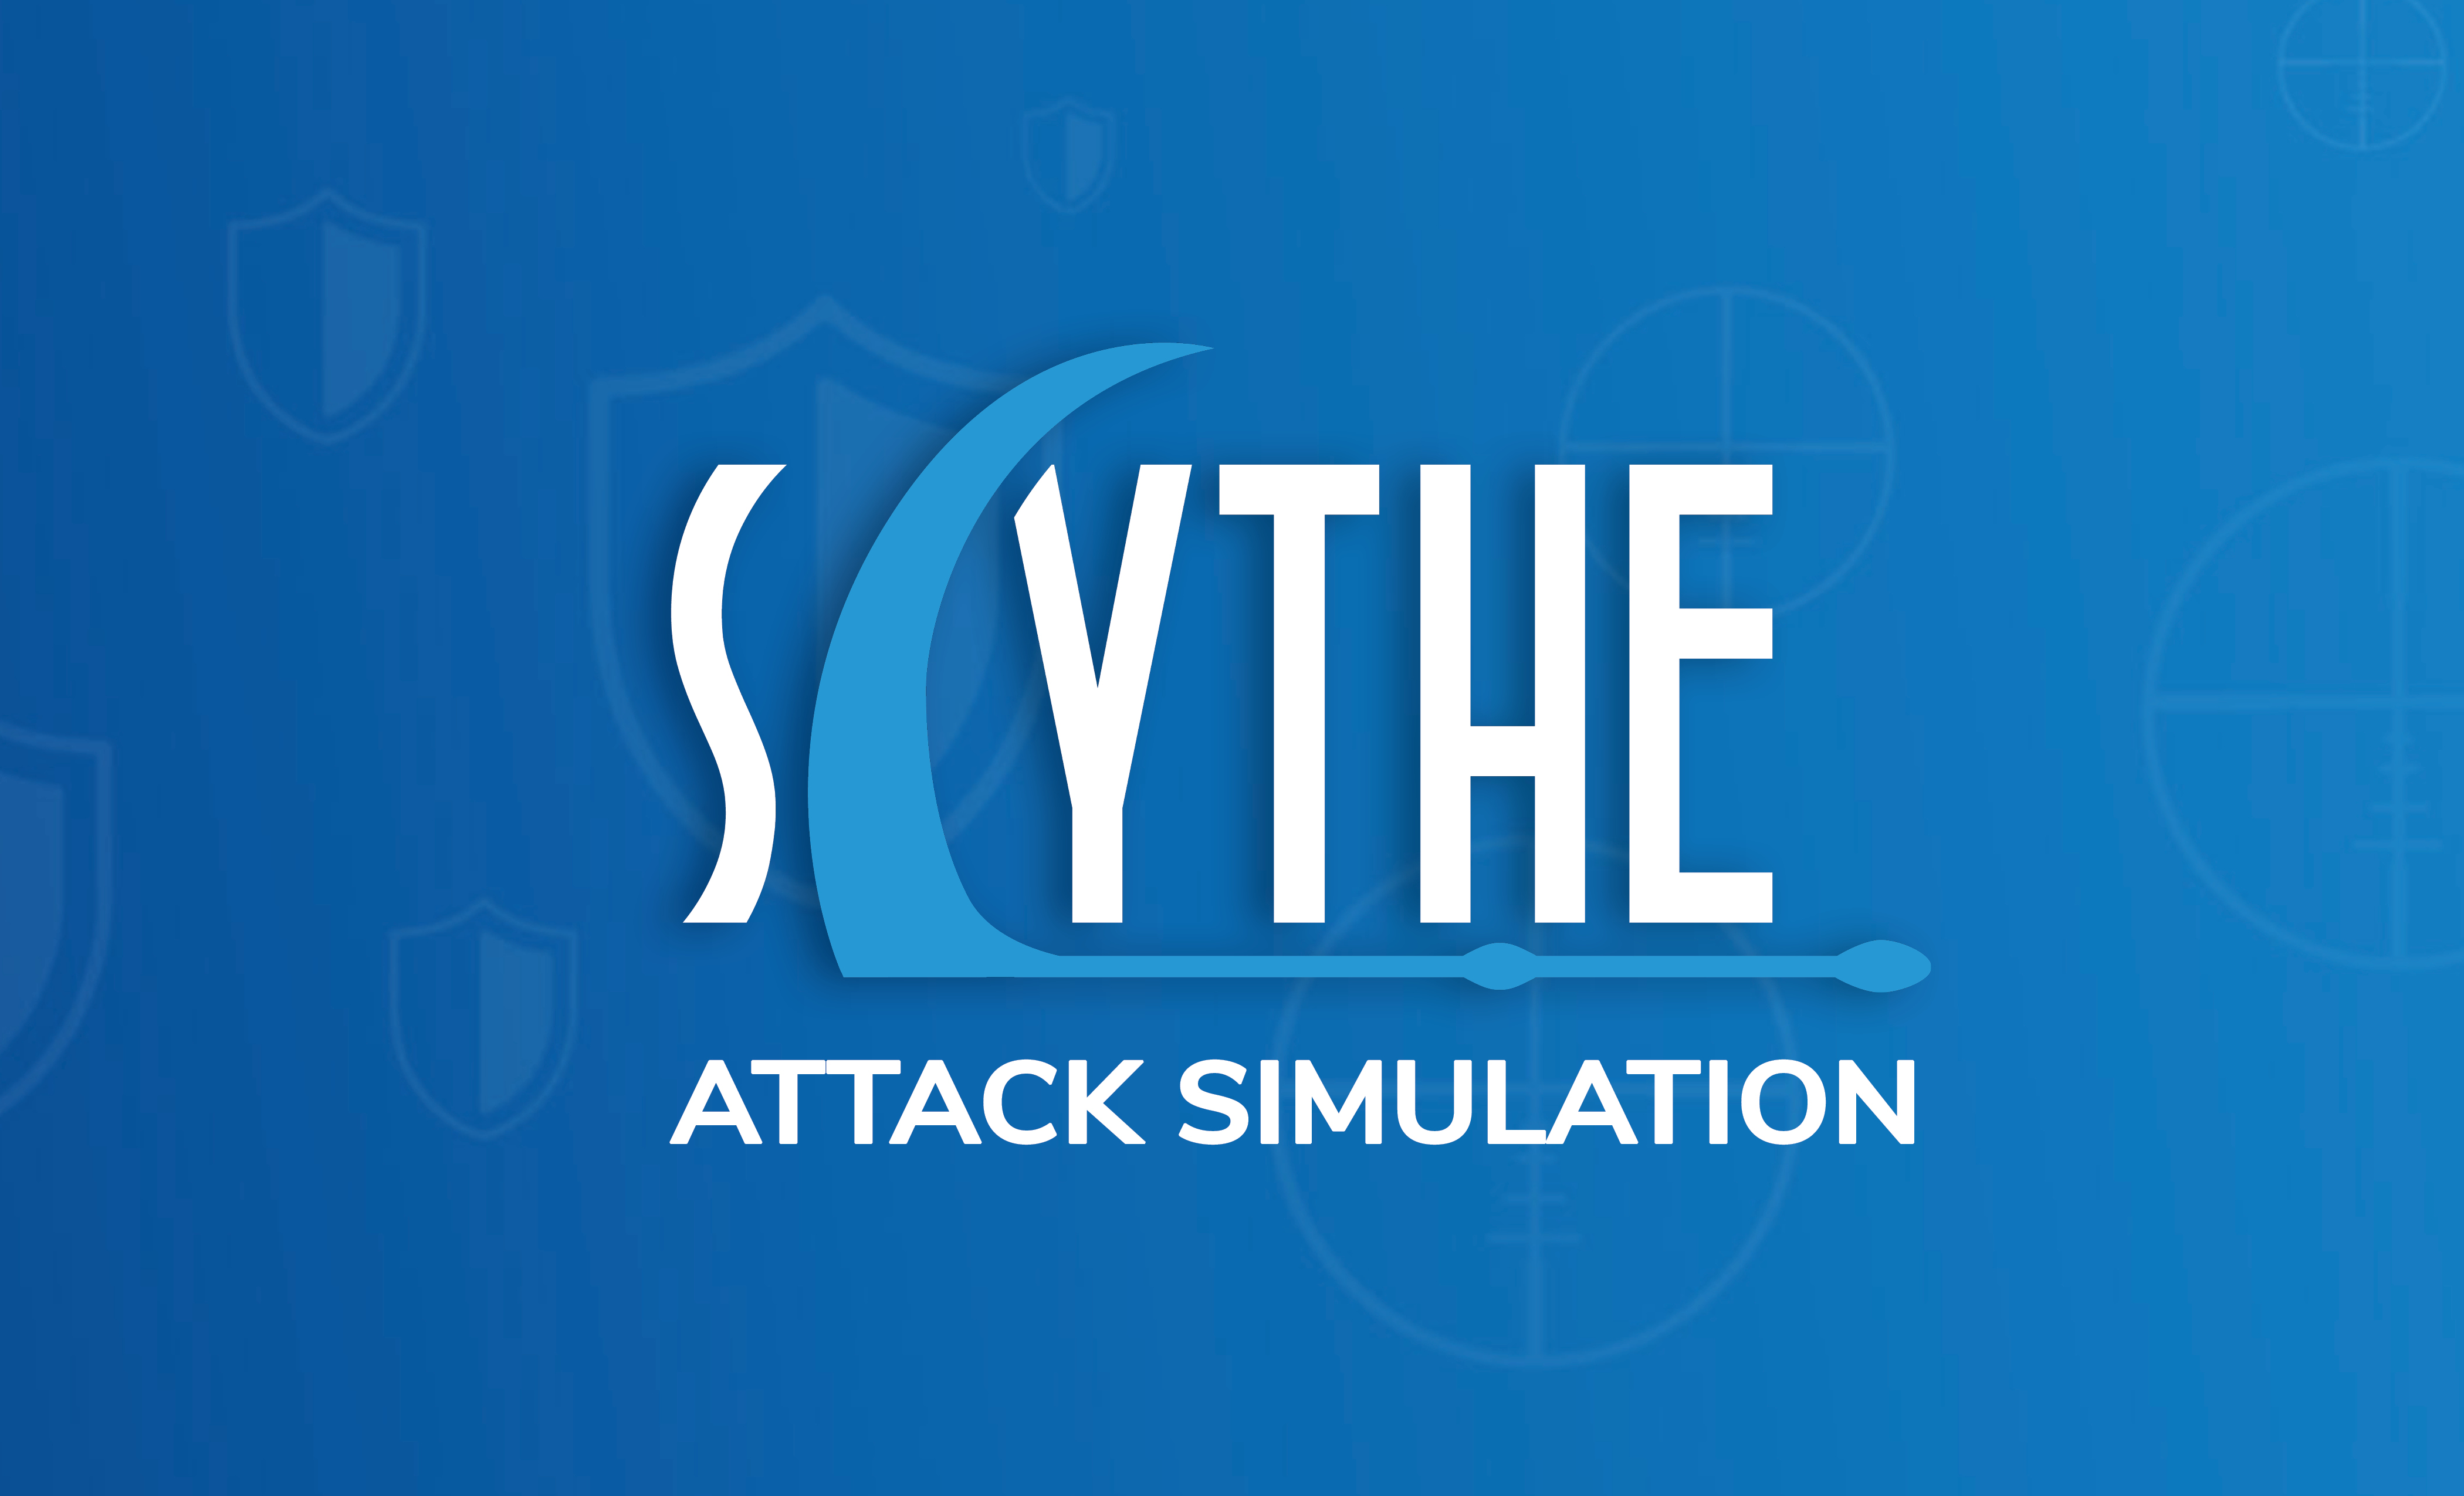 Breach Reality Check: Get More Realistic with the Latest in Attack Simulation